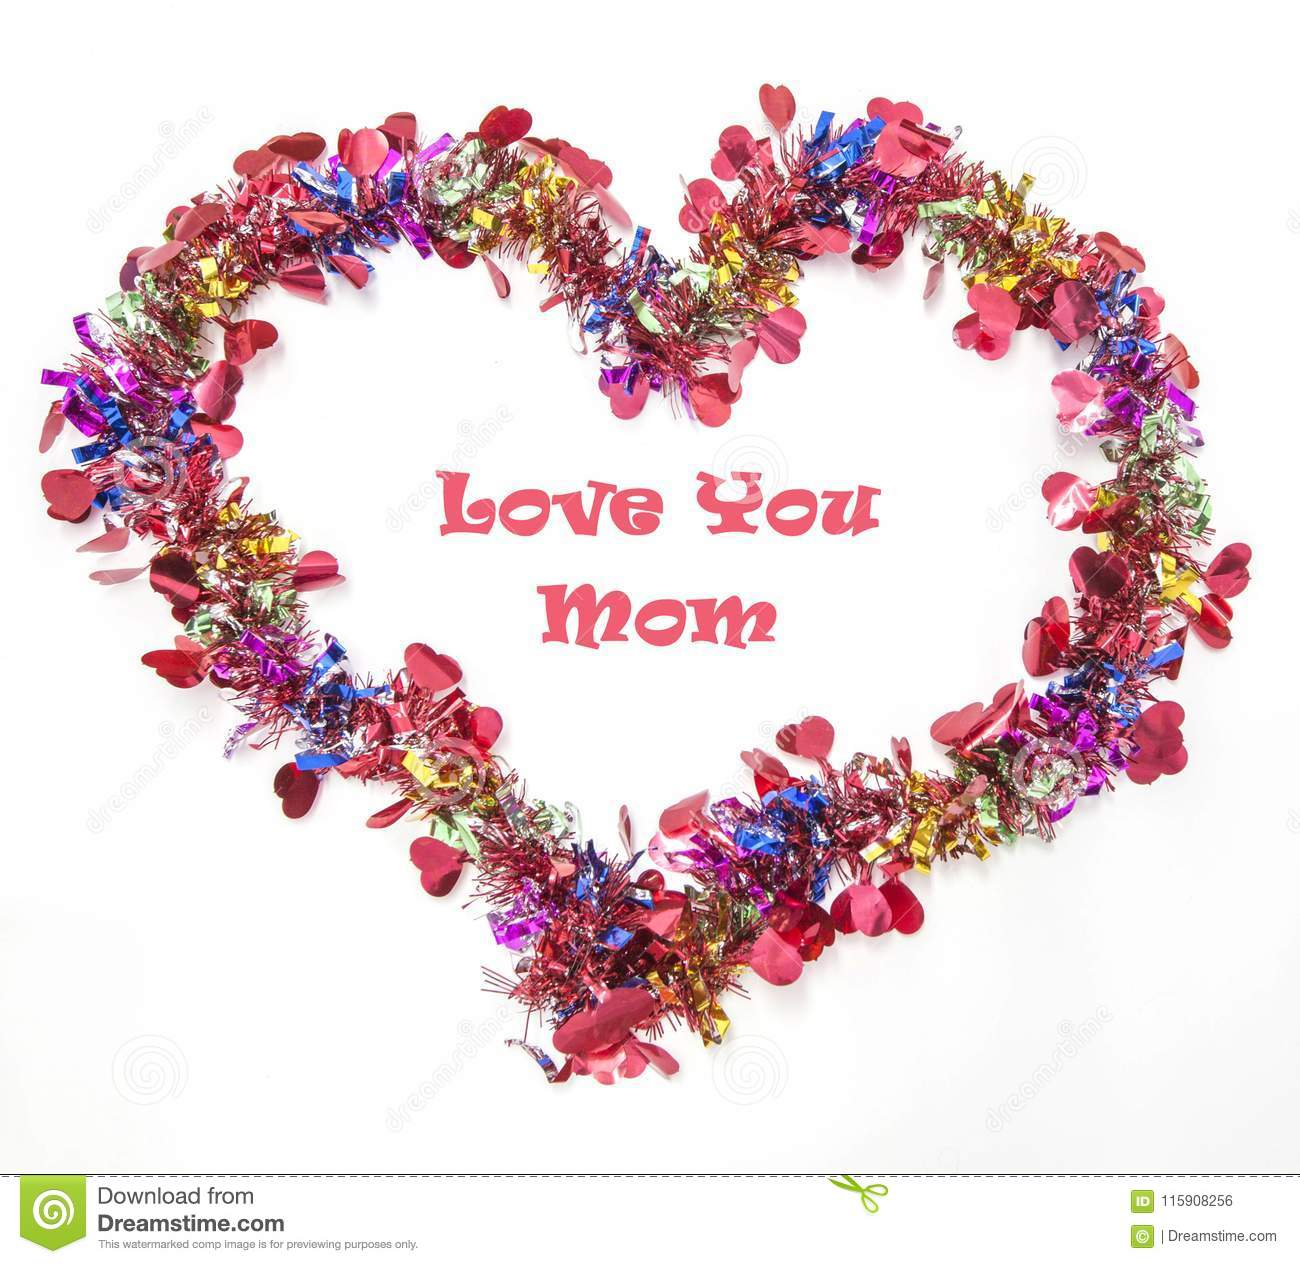 Greeting card to express your love for your mother on mothers day greeting card to express your love for your mother on mothers day m4hsunfo